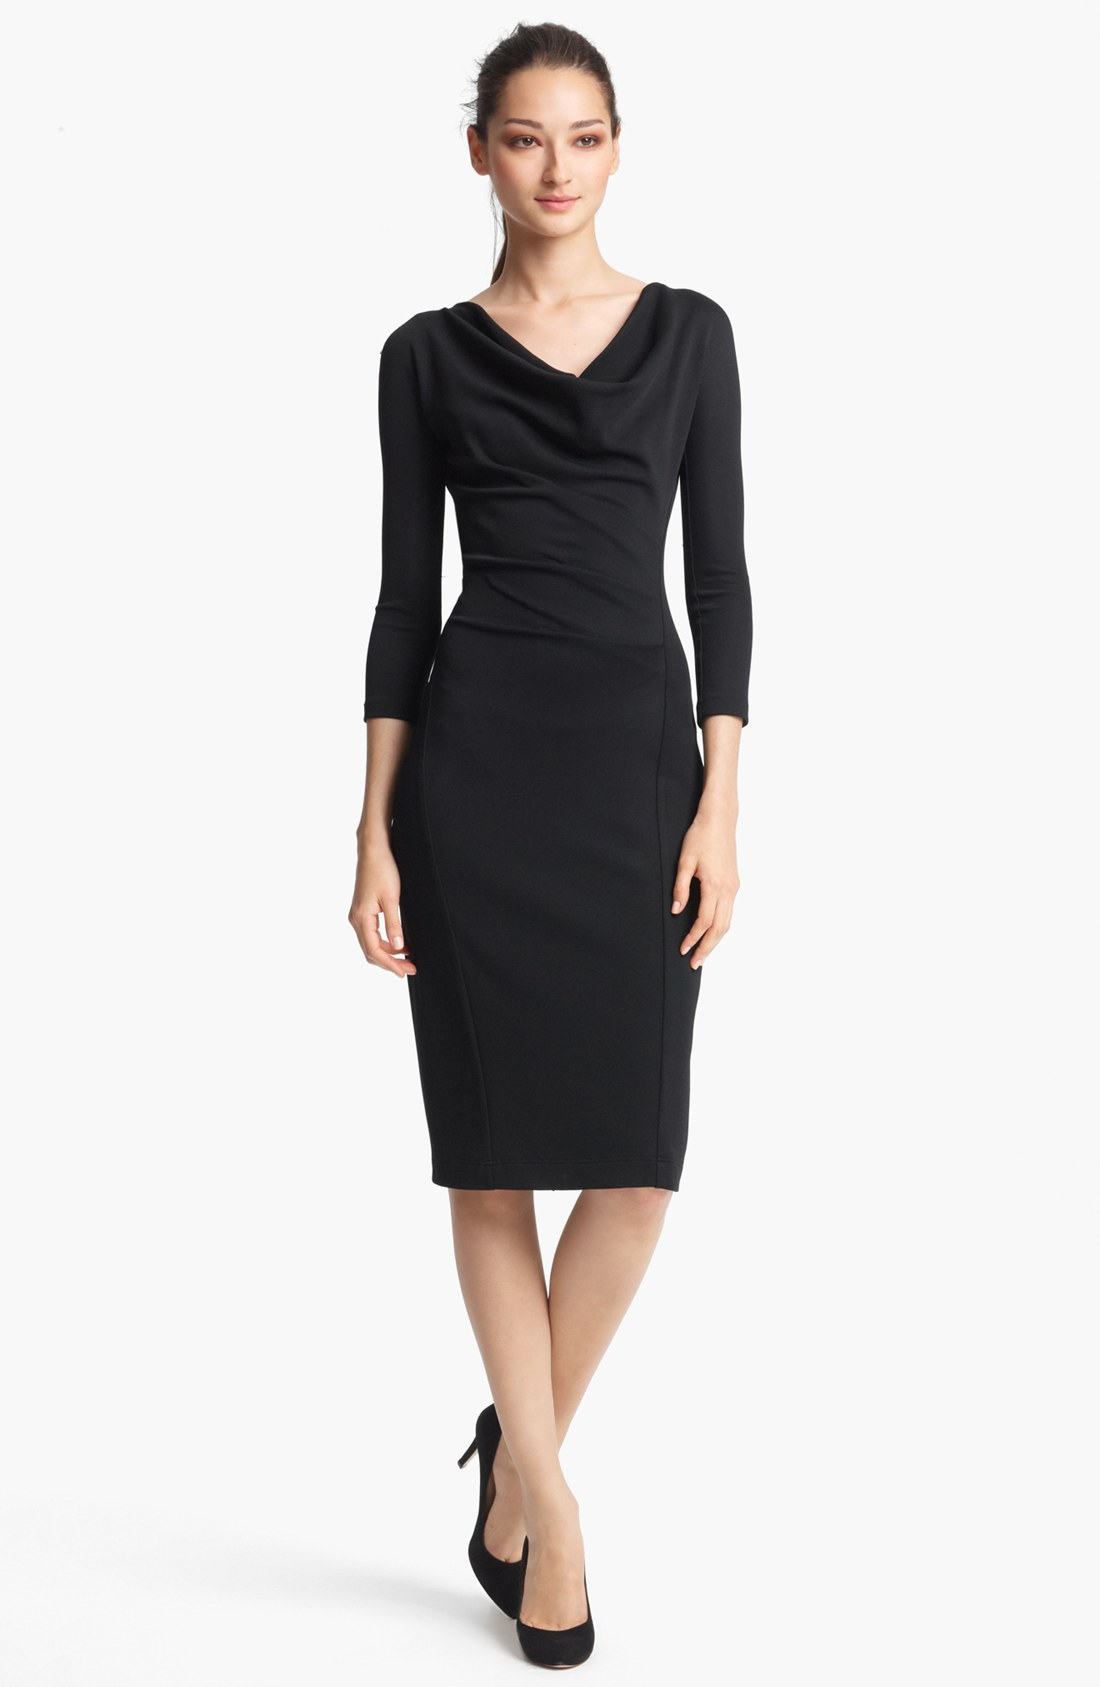 Donna karan new york collection crepe jersey dress in for Donna karen new york